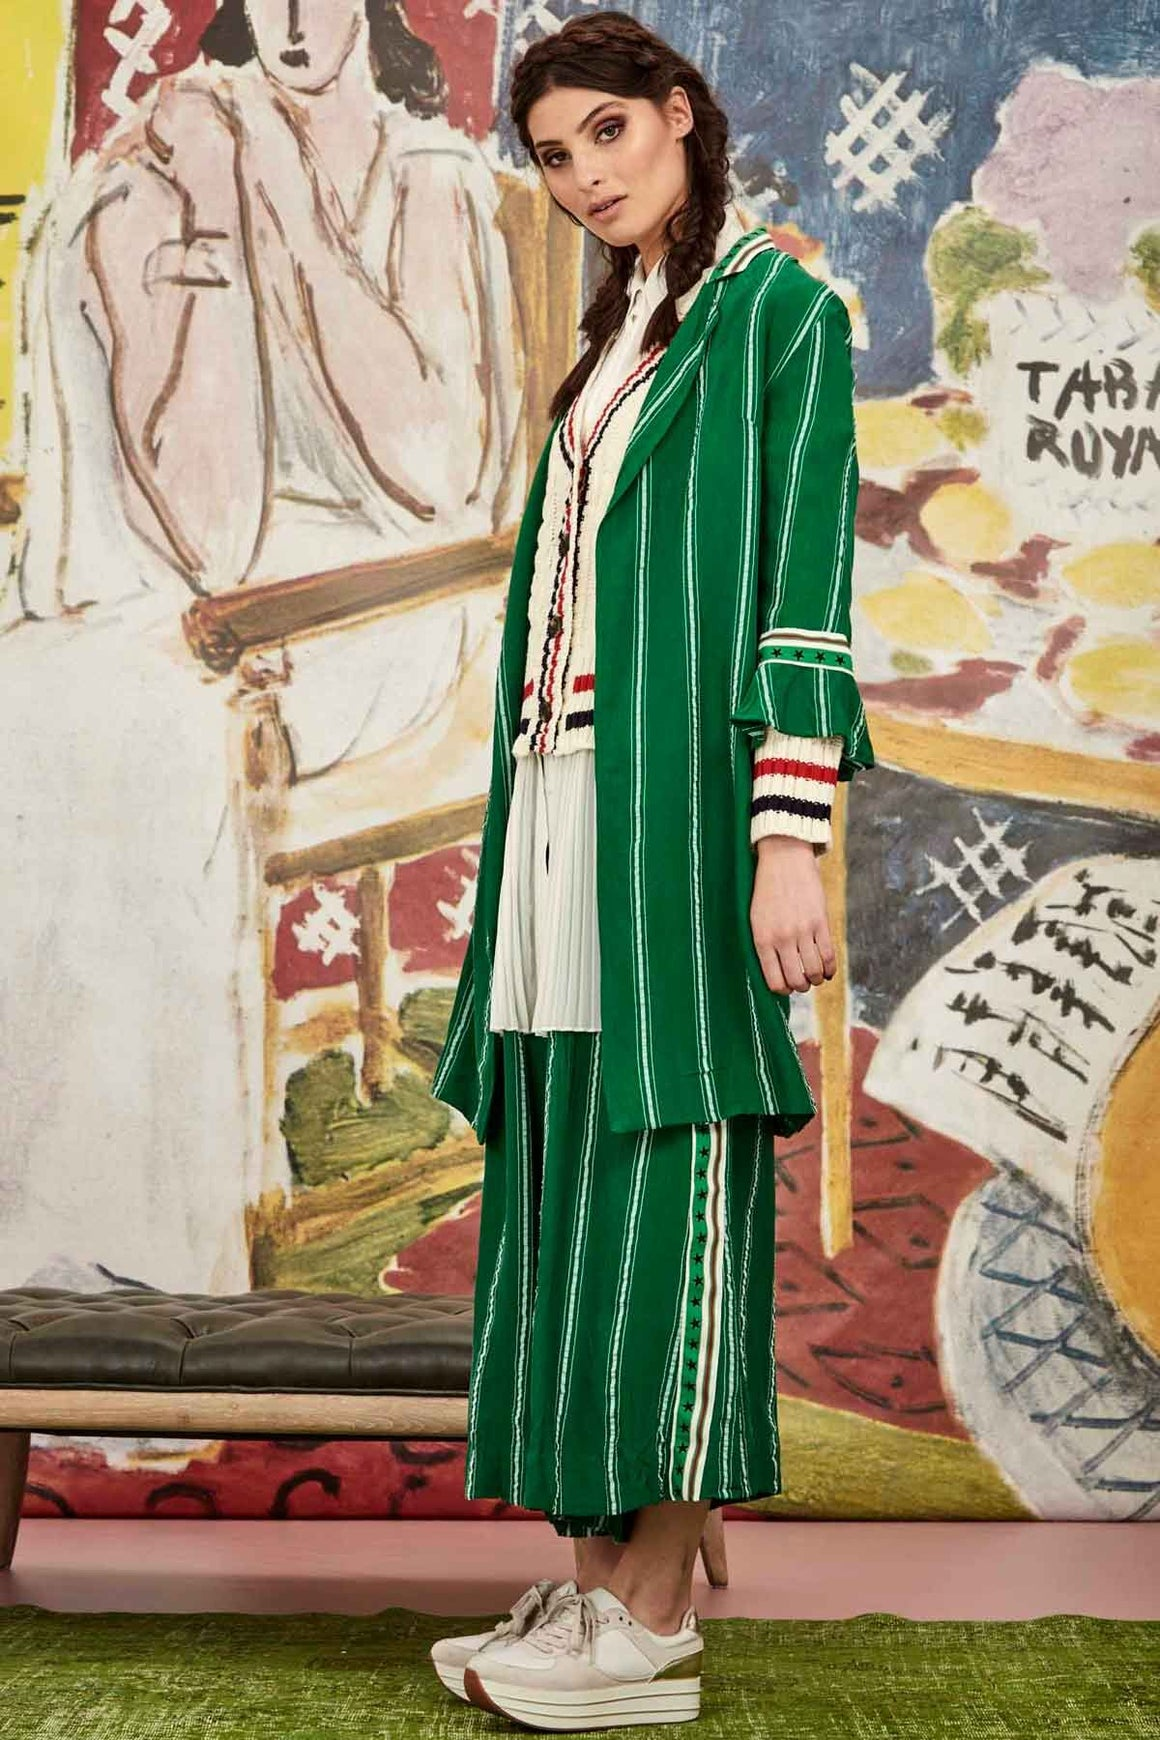 Star Duster Jacket -Green Stripe | Shop Curate online & instore at W&G